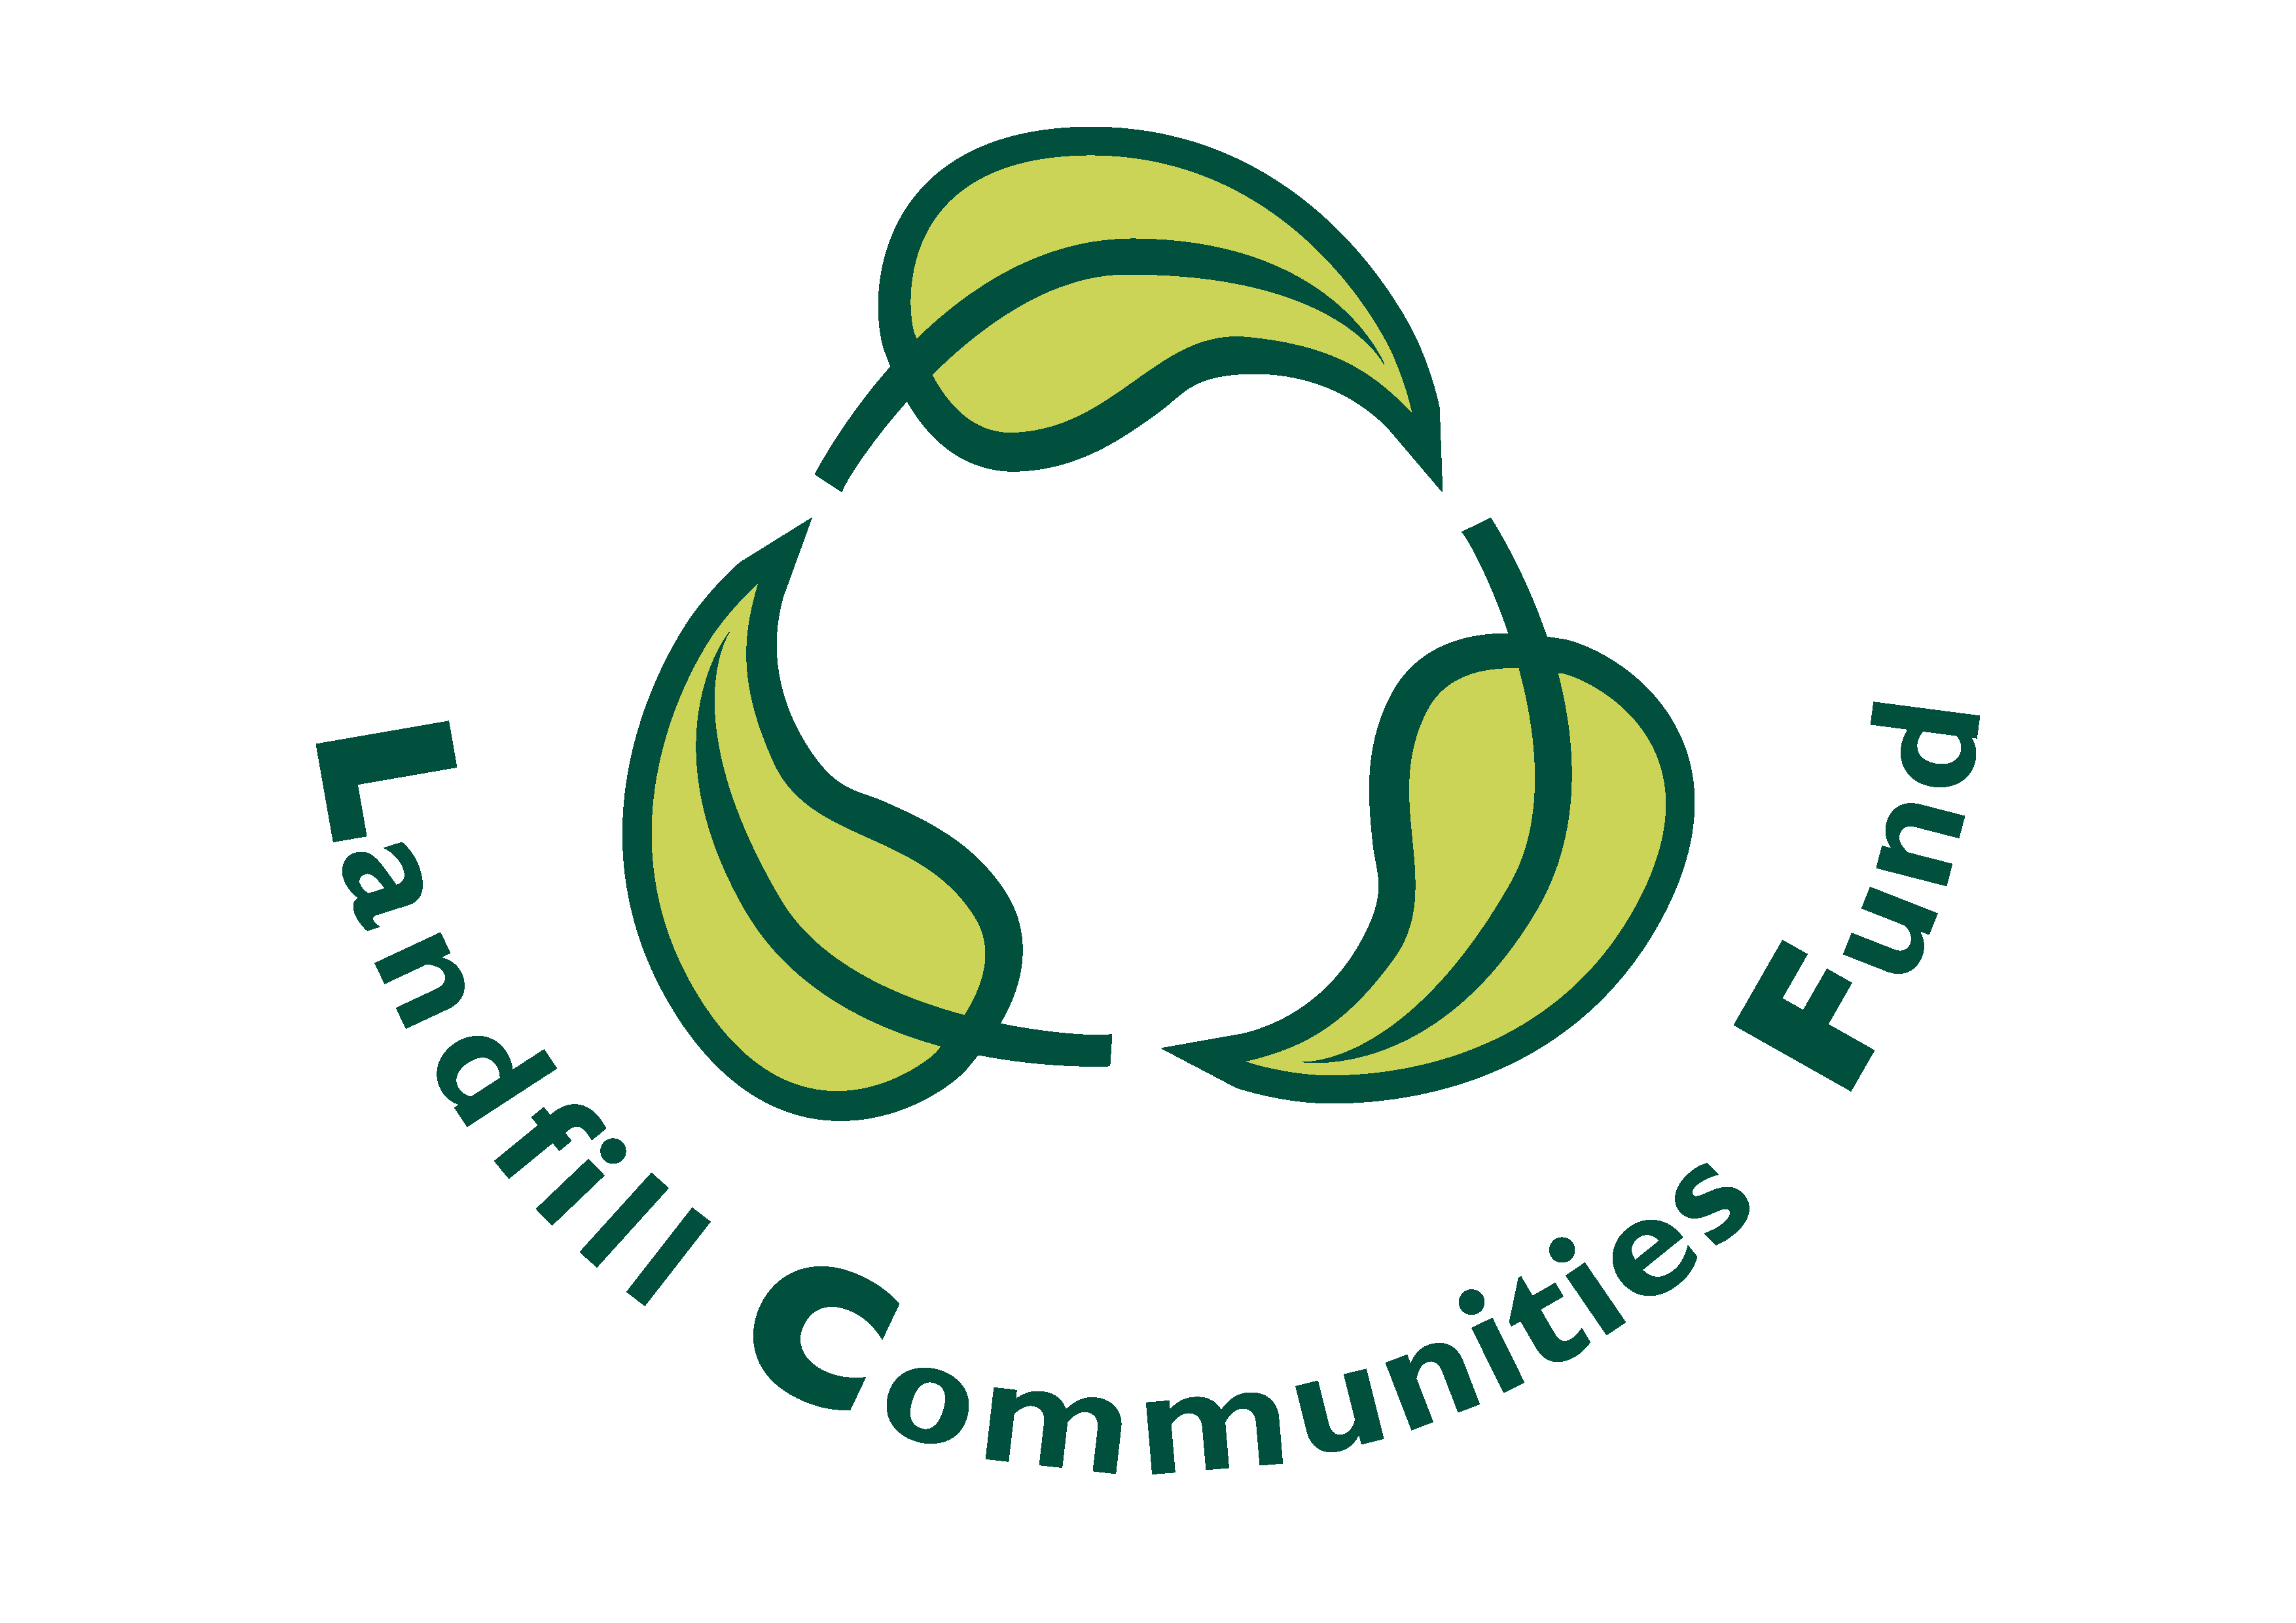 Landfill Communities Fund